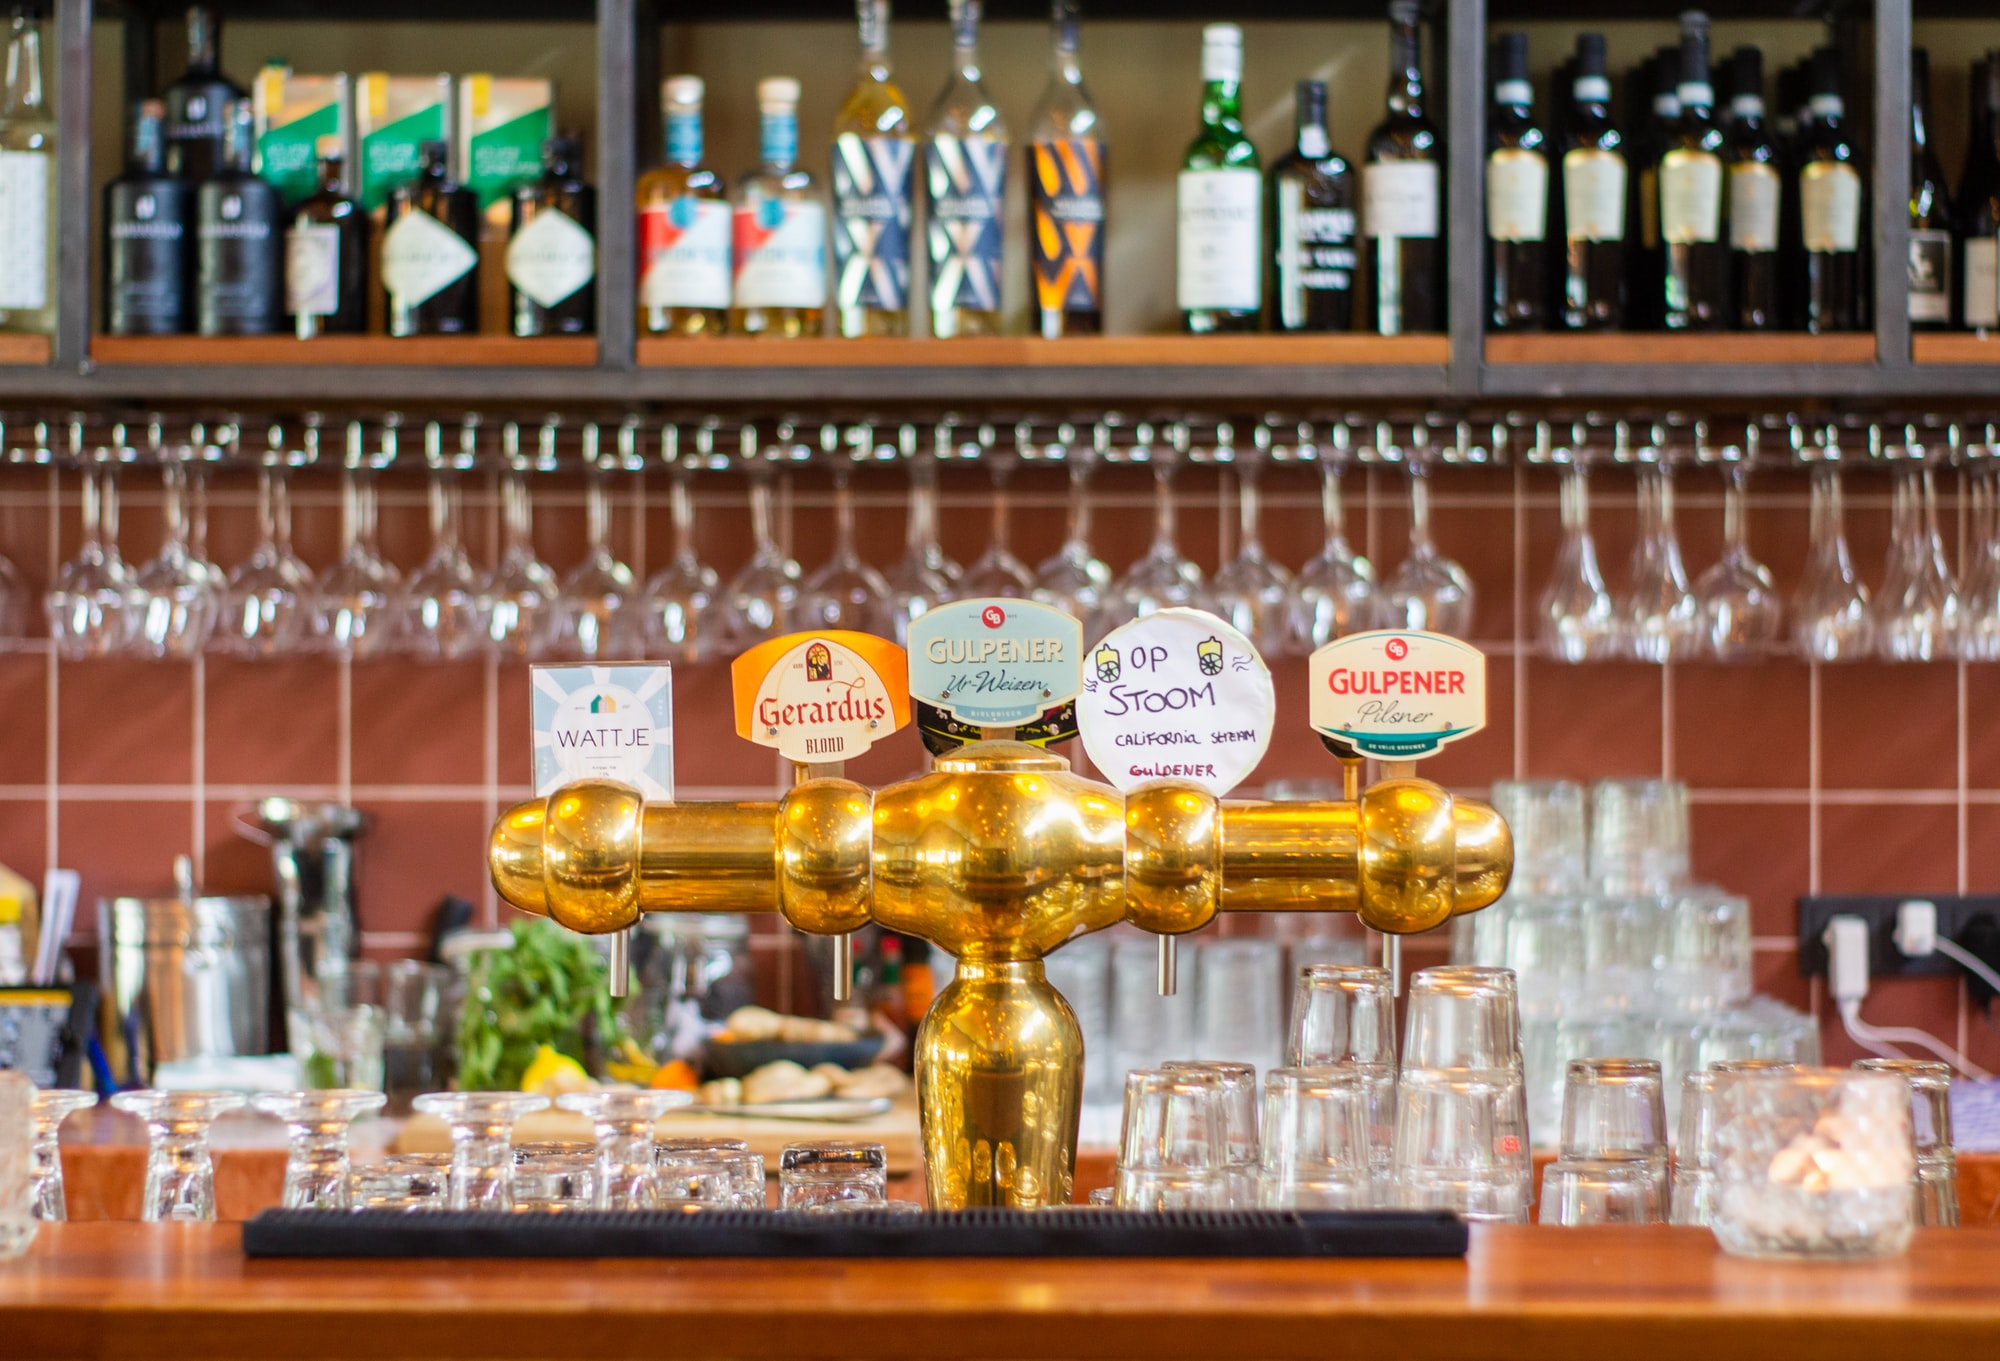 Best BYOF Breweries and Bars in Chicago